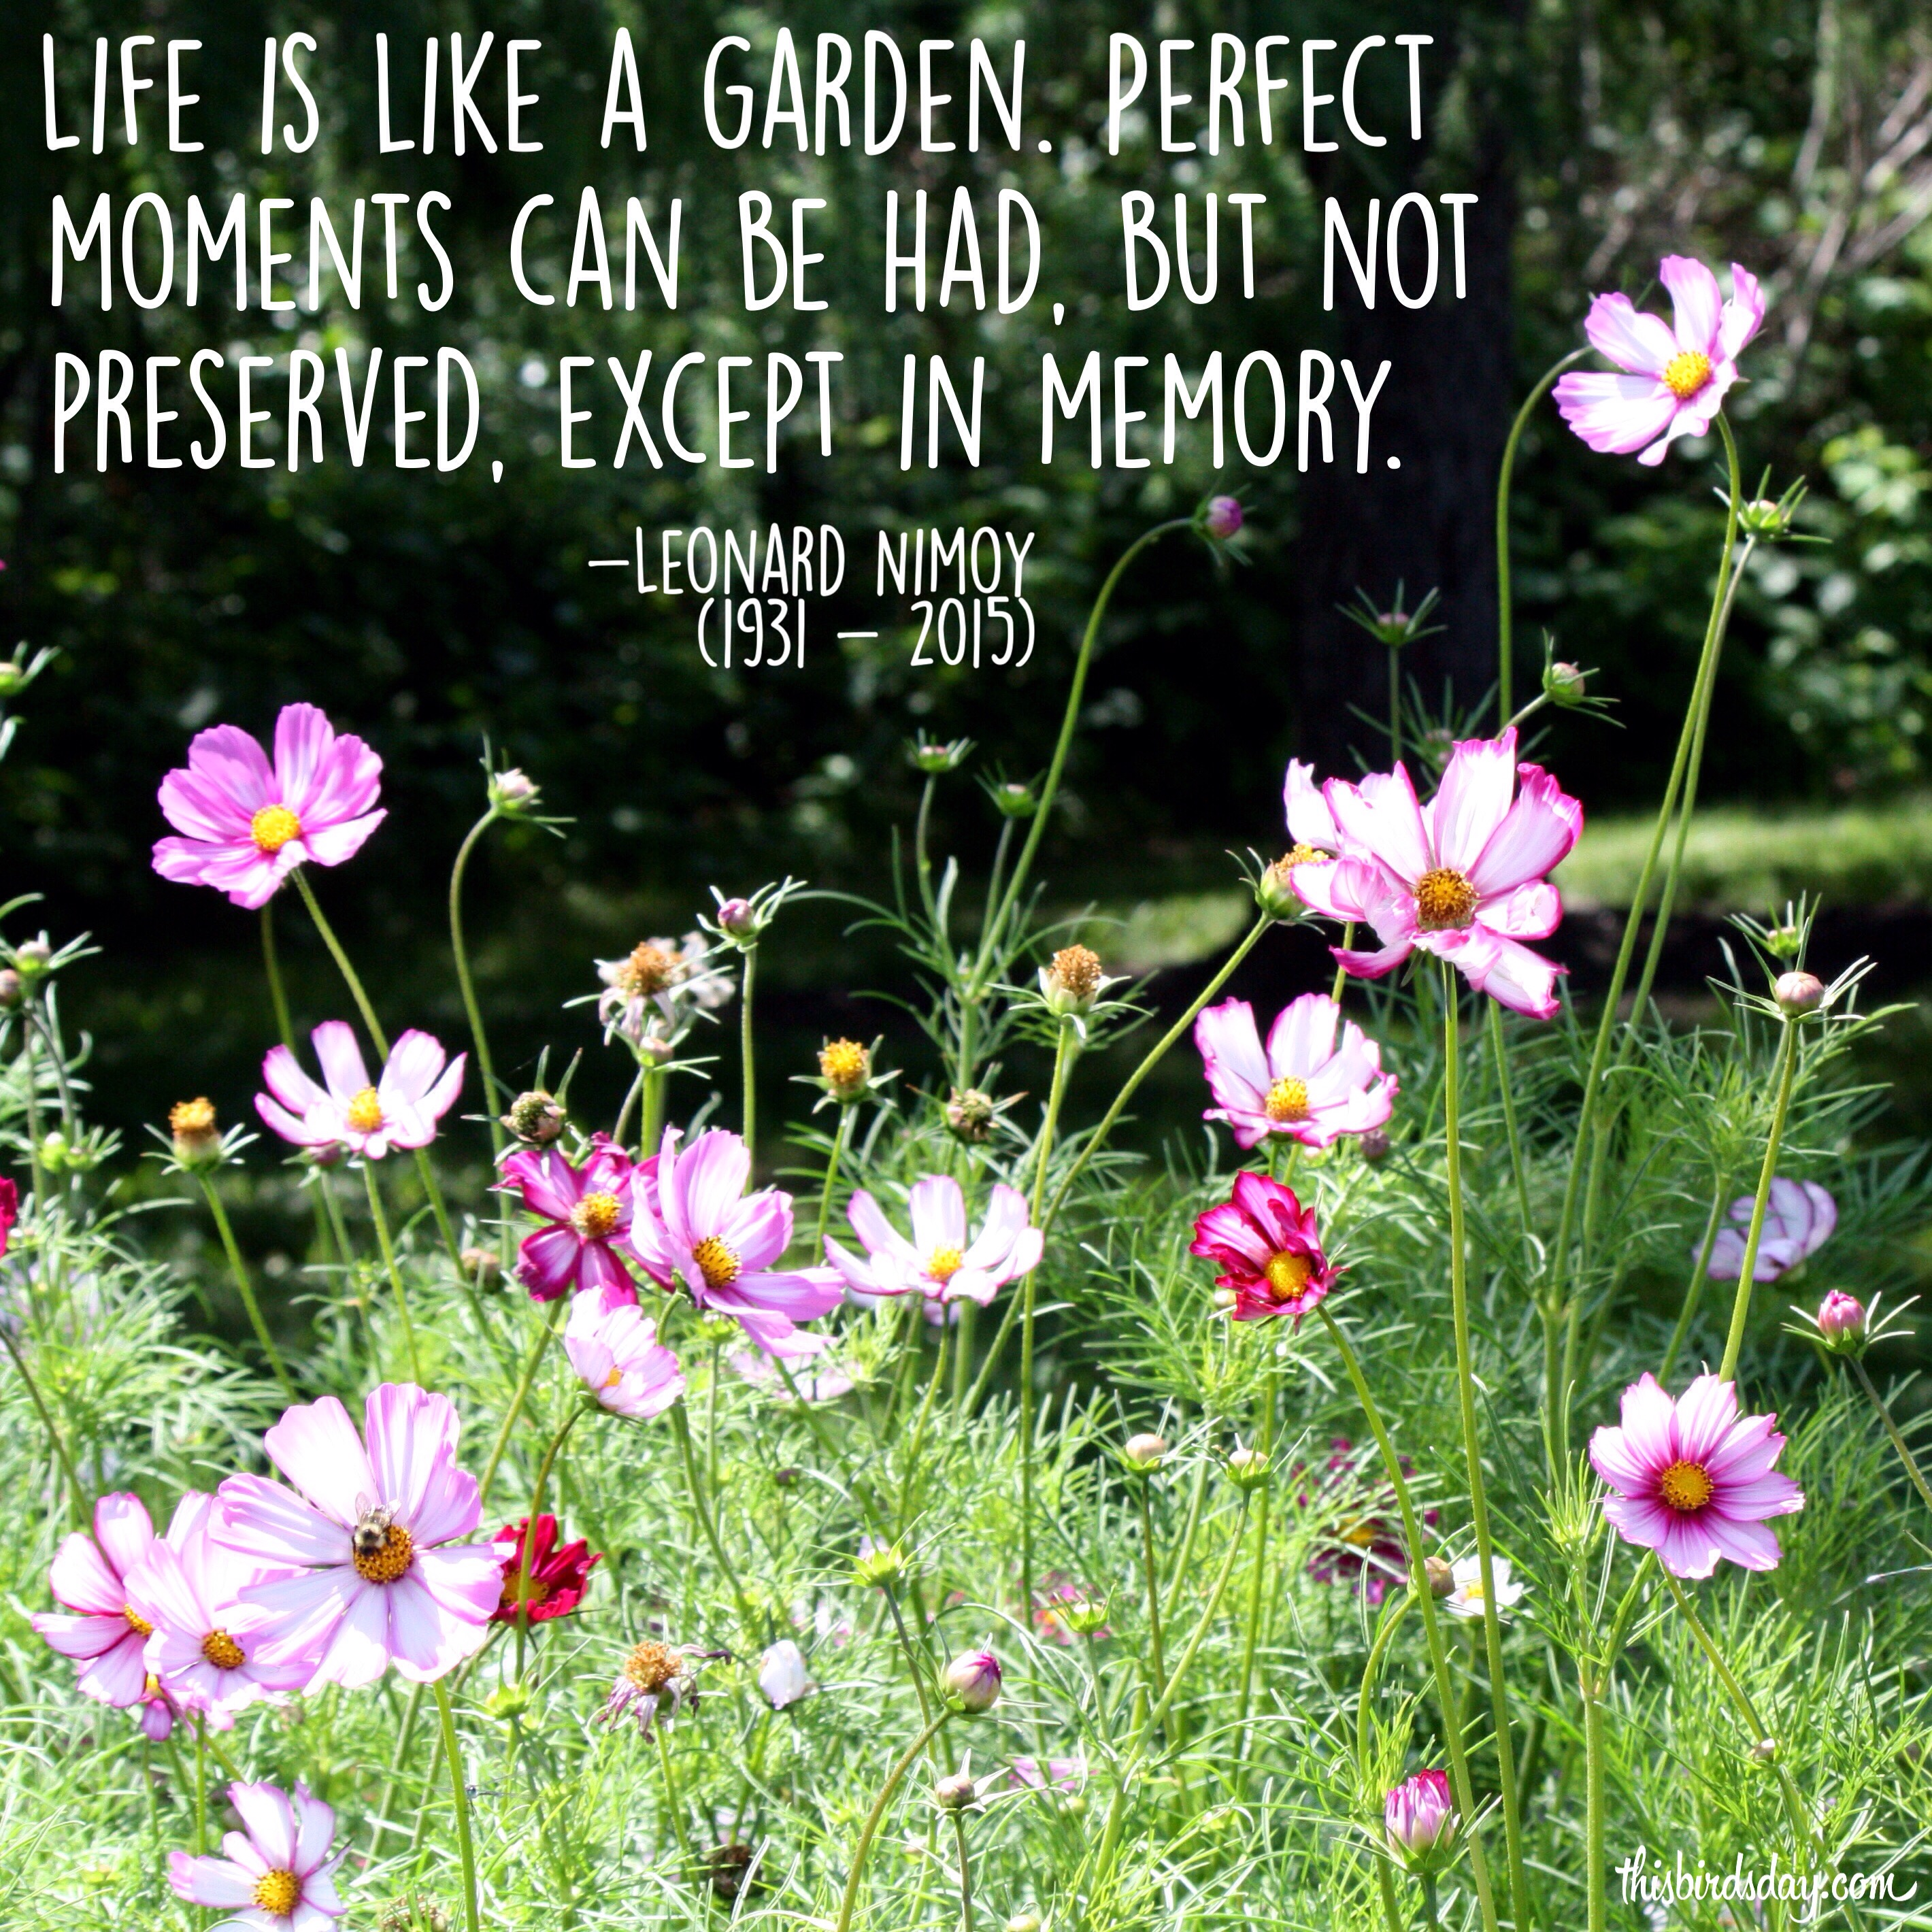 """Life is like a garden. Perfect moments can be had, but not preserved, except in memory."" Leonard Nimoy Photo copyright Sheri Landry"